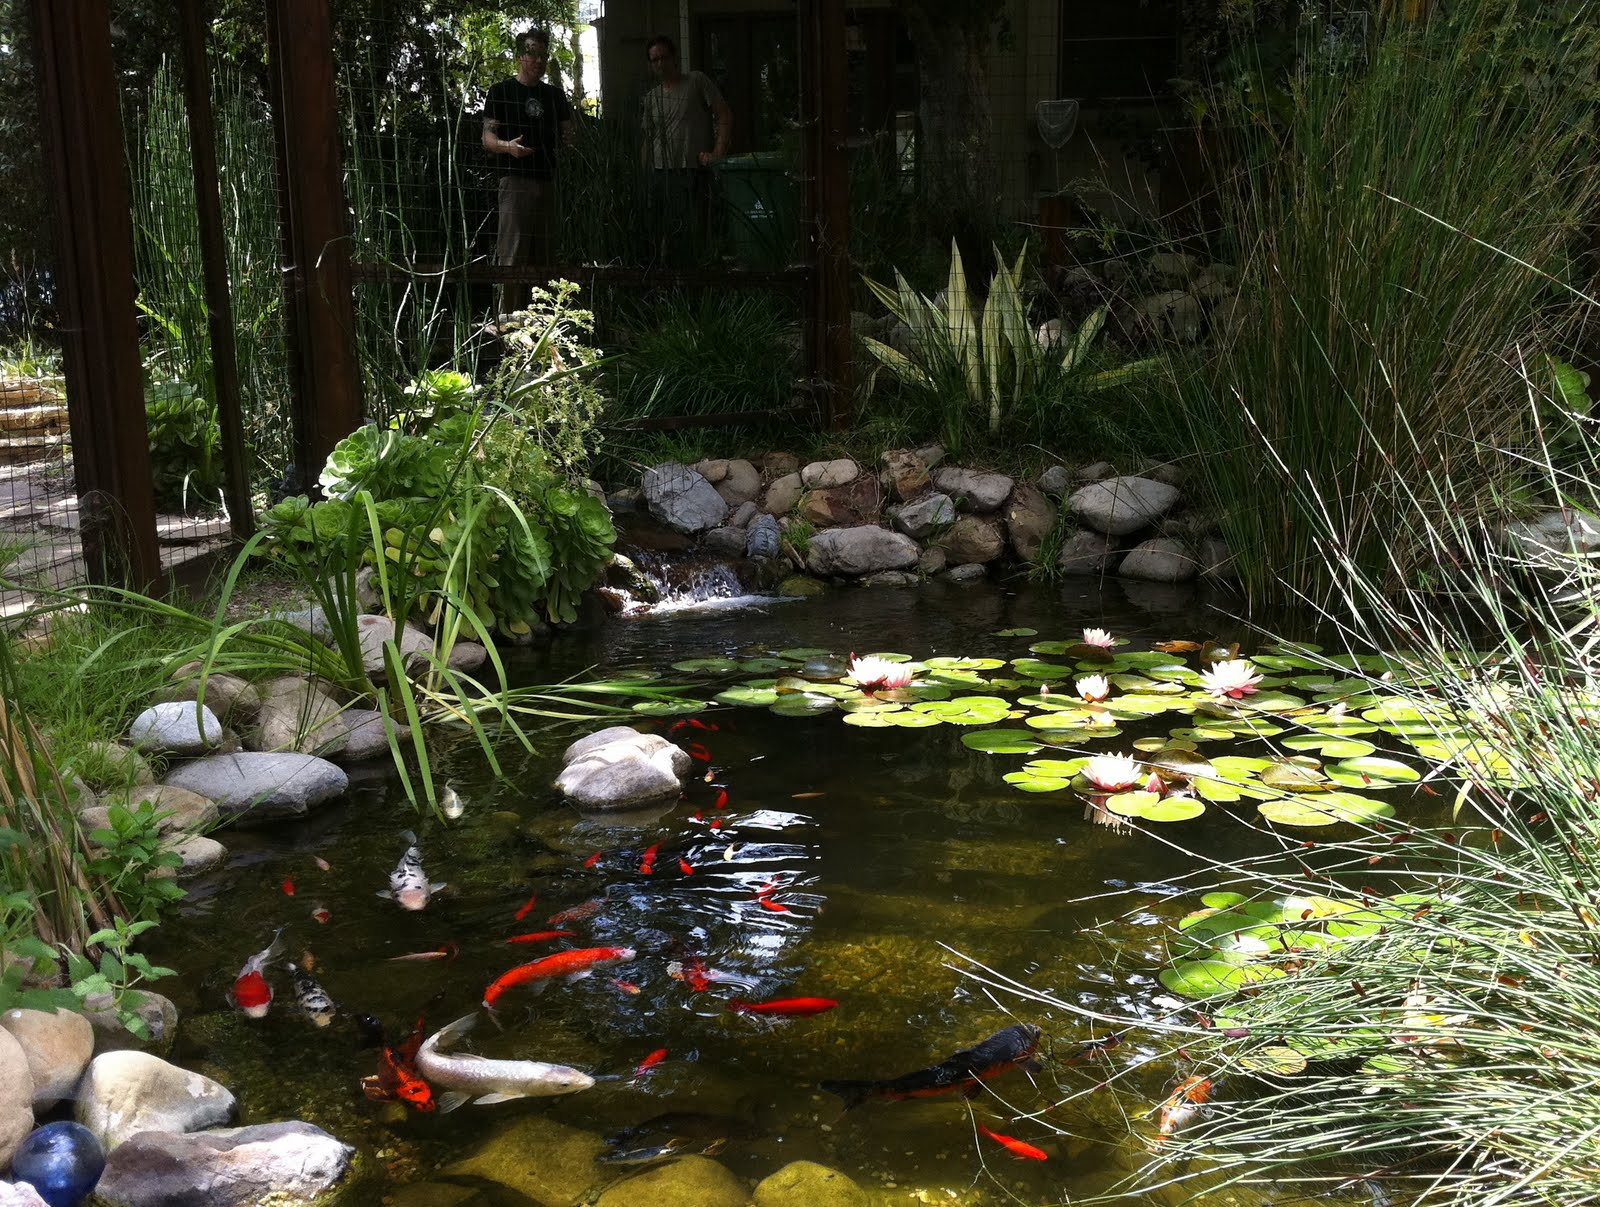 Elgin eco house garden serenity in the midst of the city for Koi fish pond